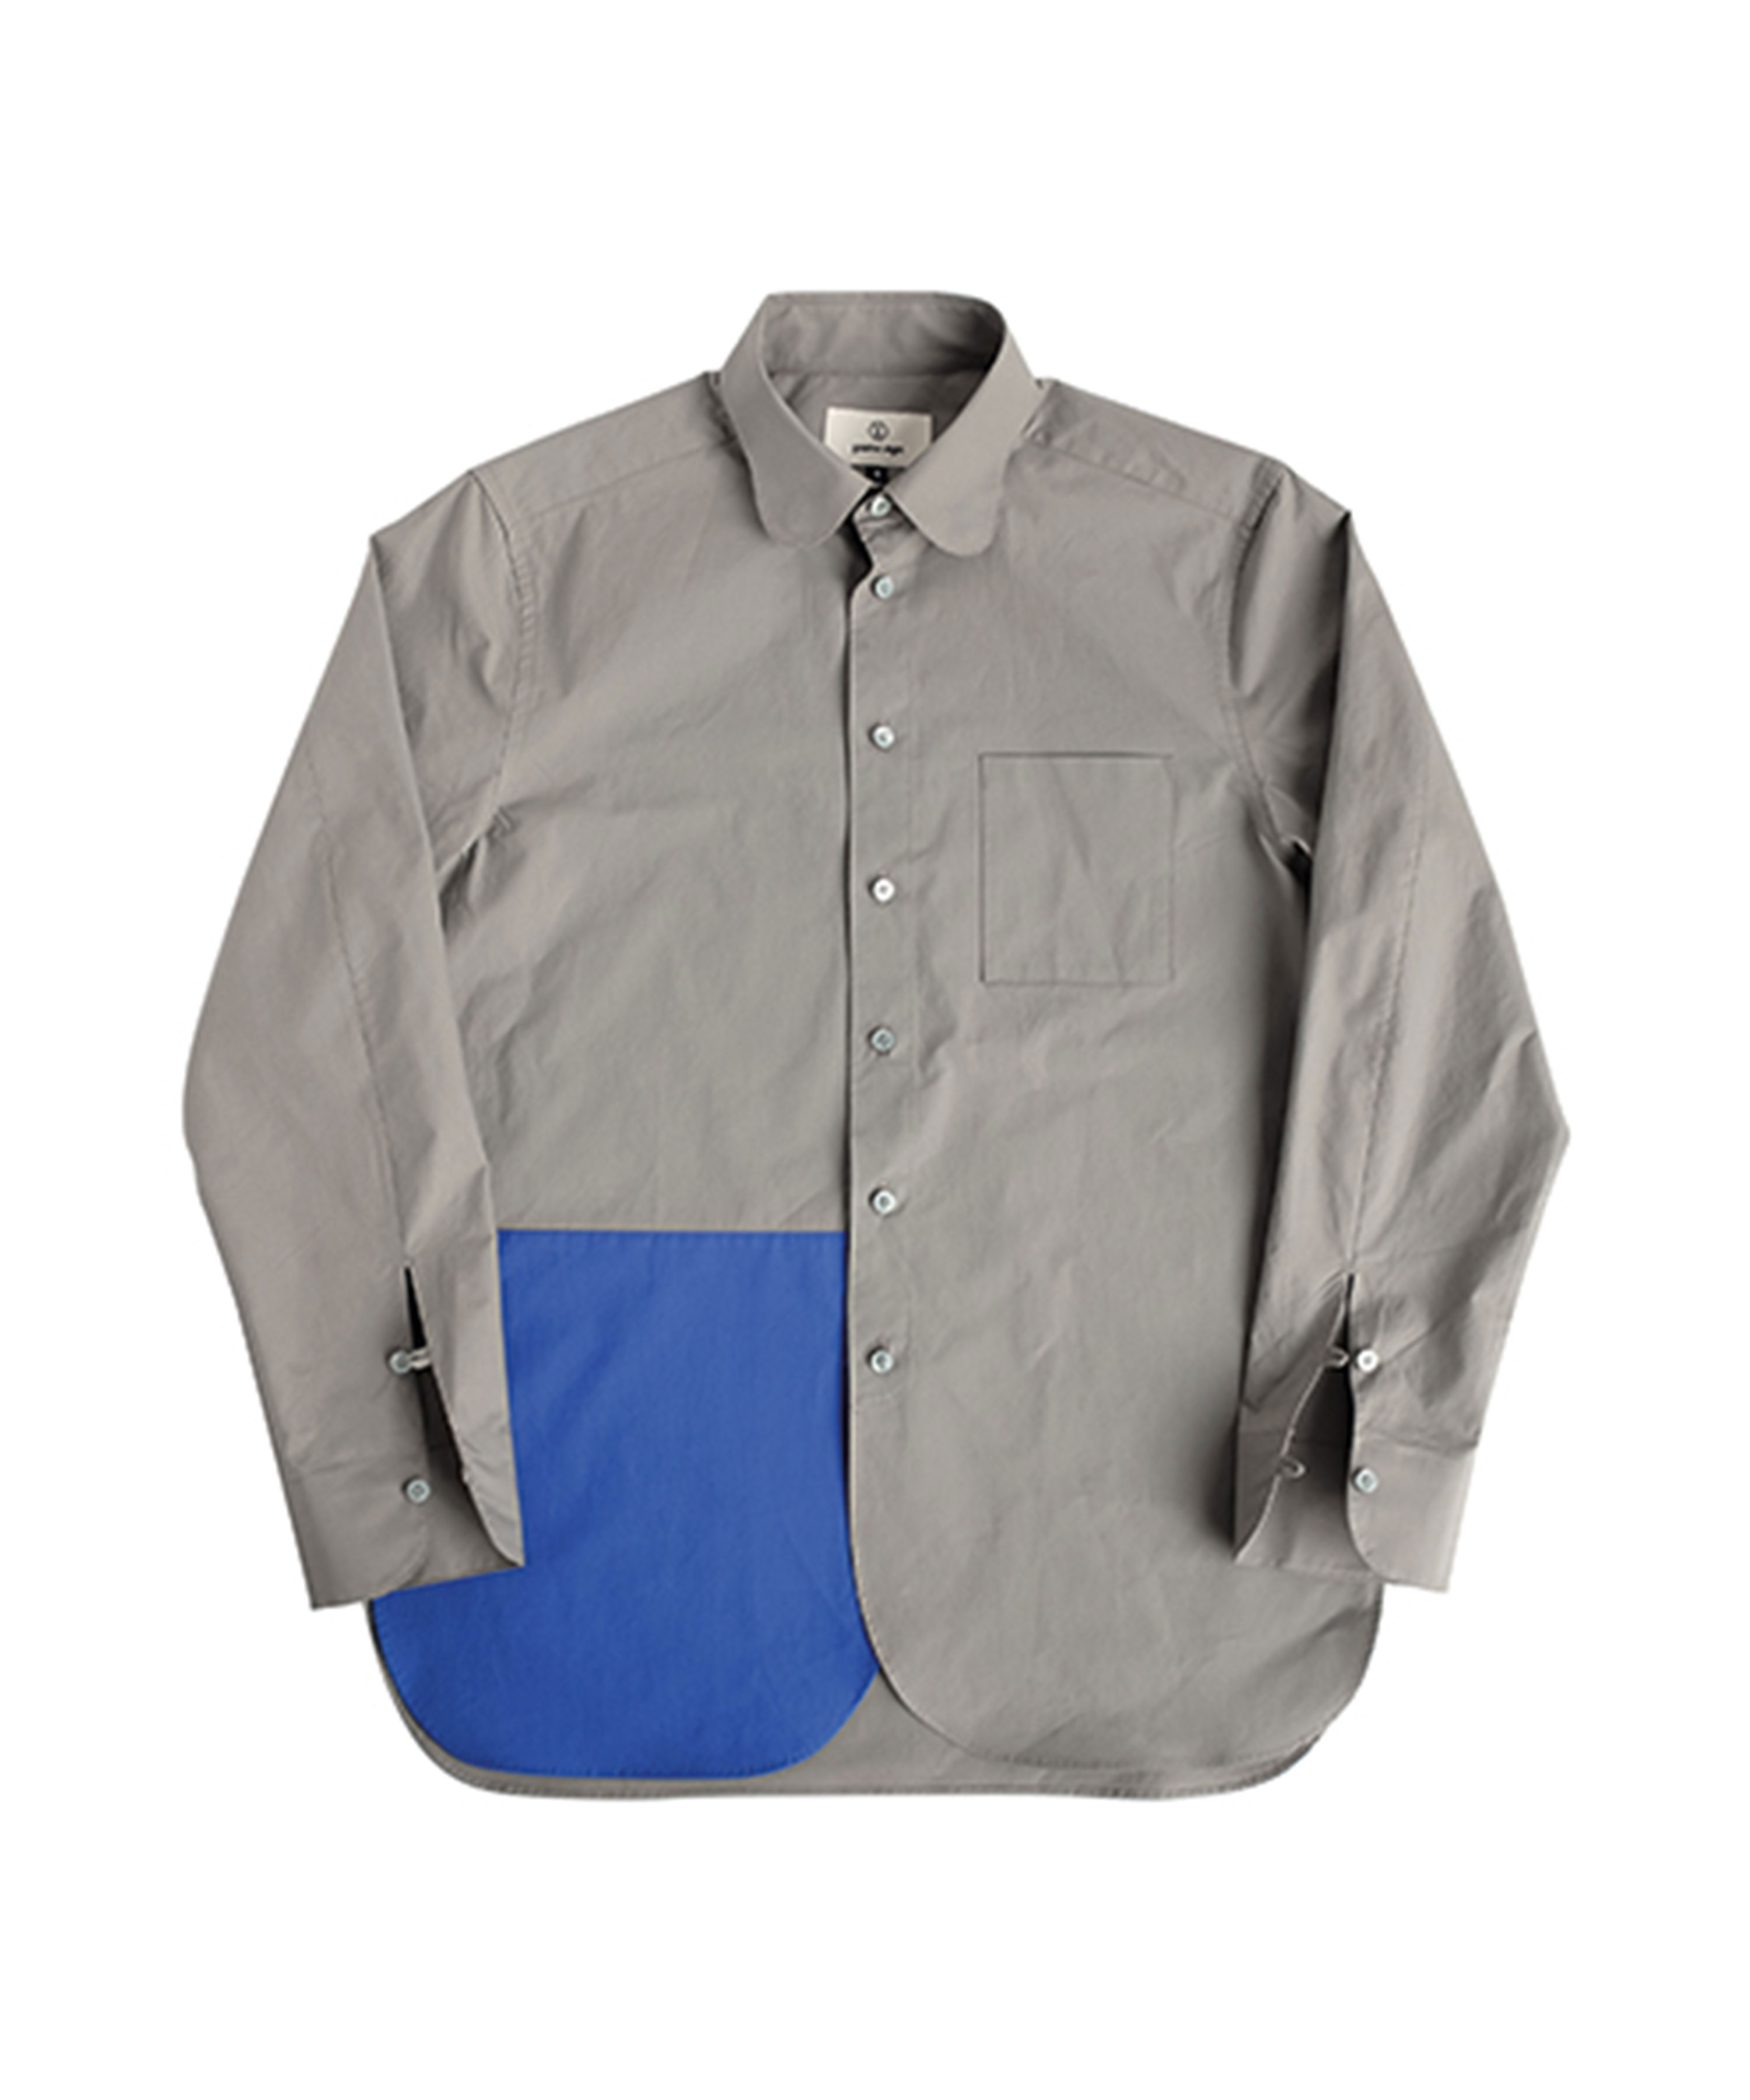 CEMENT GREY&BLUE BUTTERFLY COLLAR SHIRT